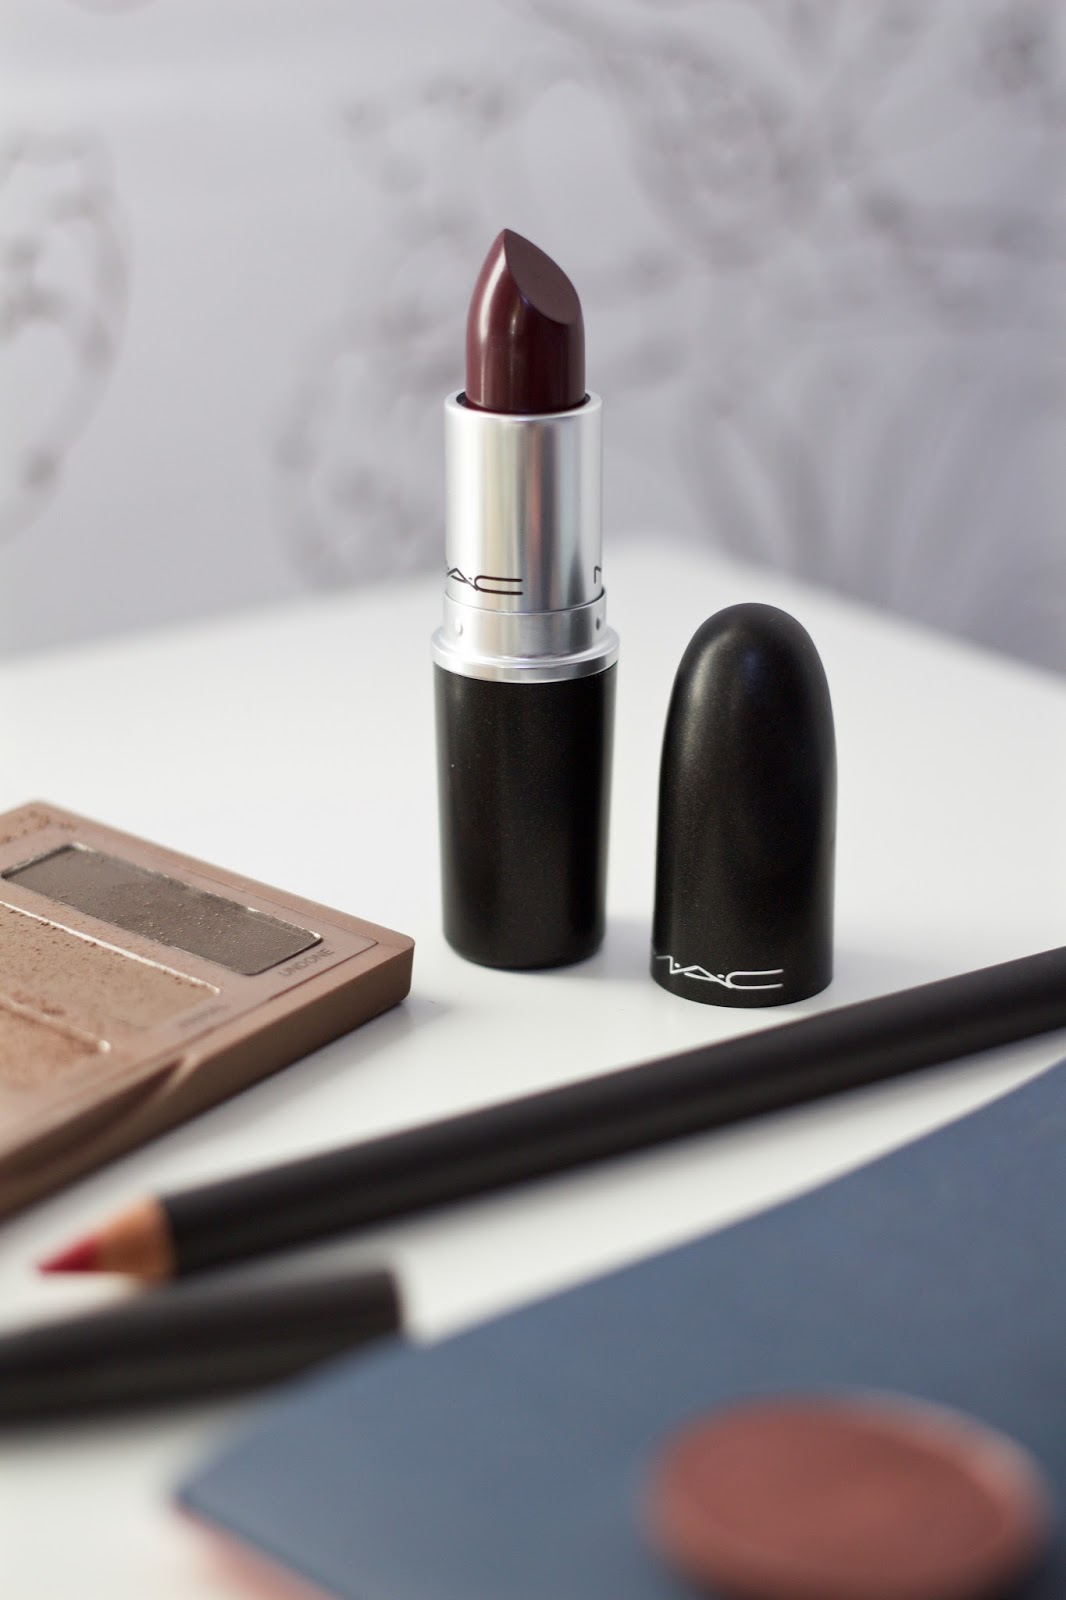 NEW IN THE MAKE-UP STASH | Blush & Noise | Style, Beauty & Life Blog